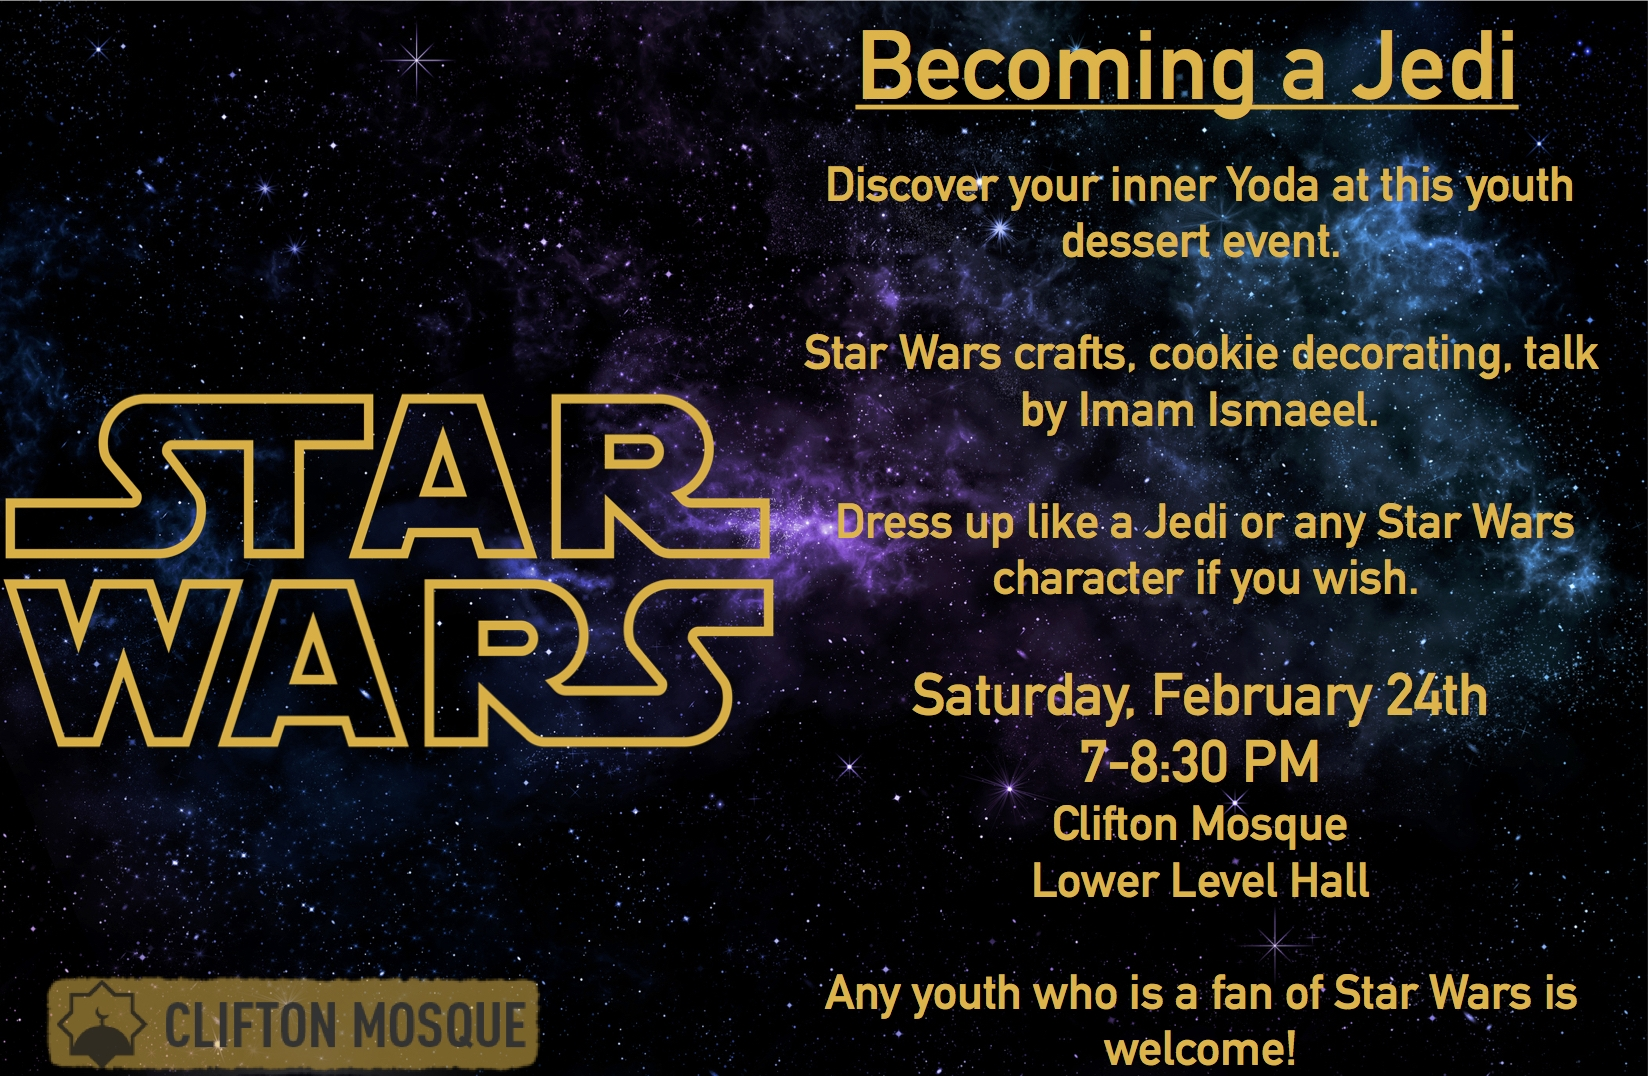 Join us for this amazing youth dessert event for kids of all ages!